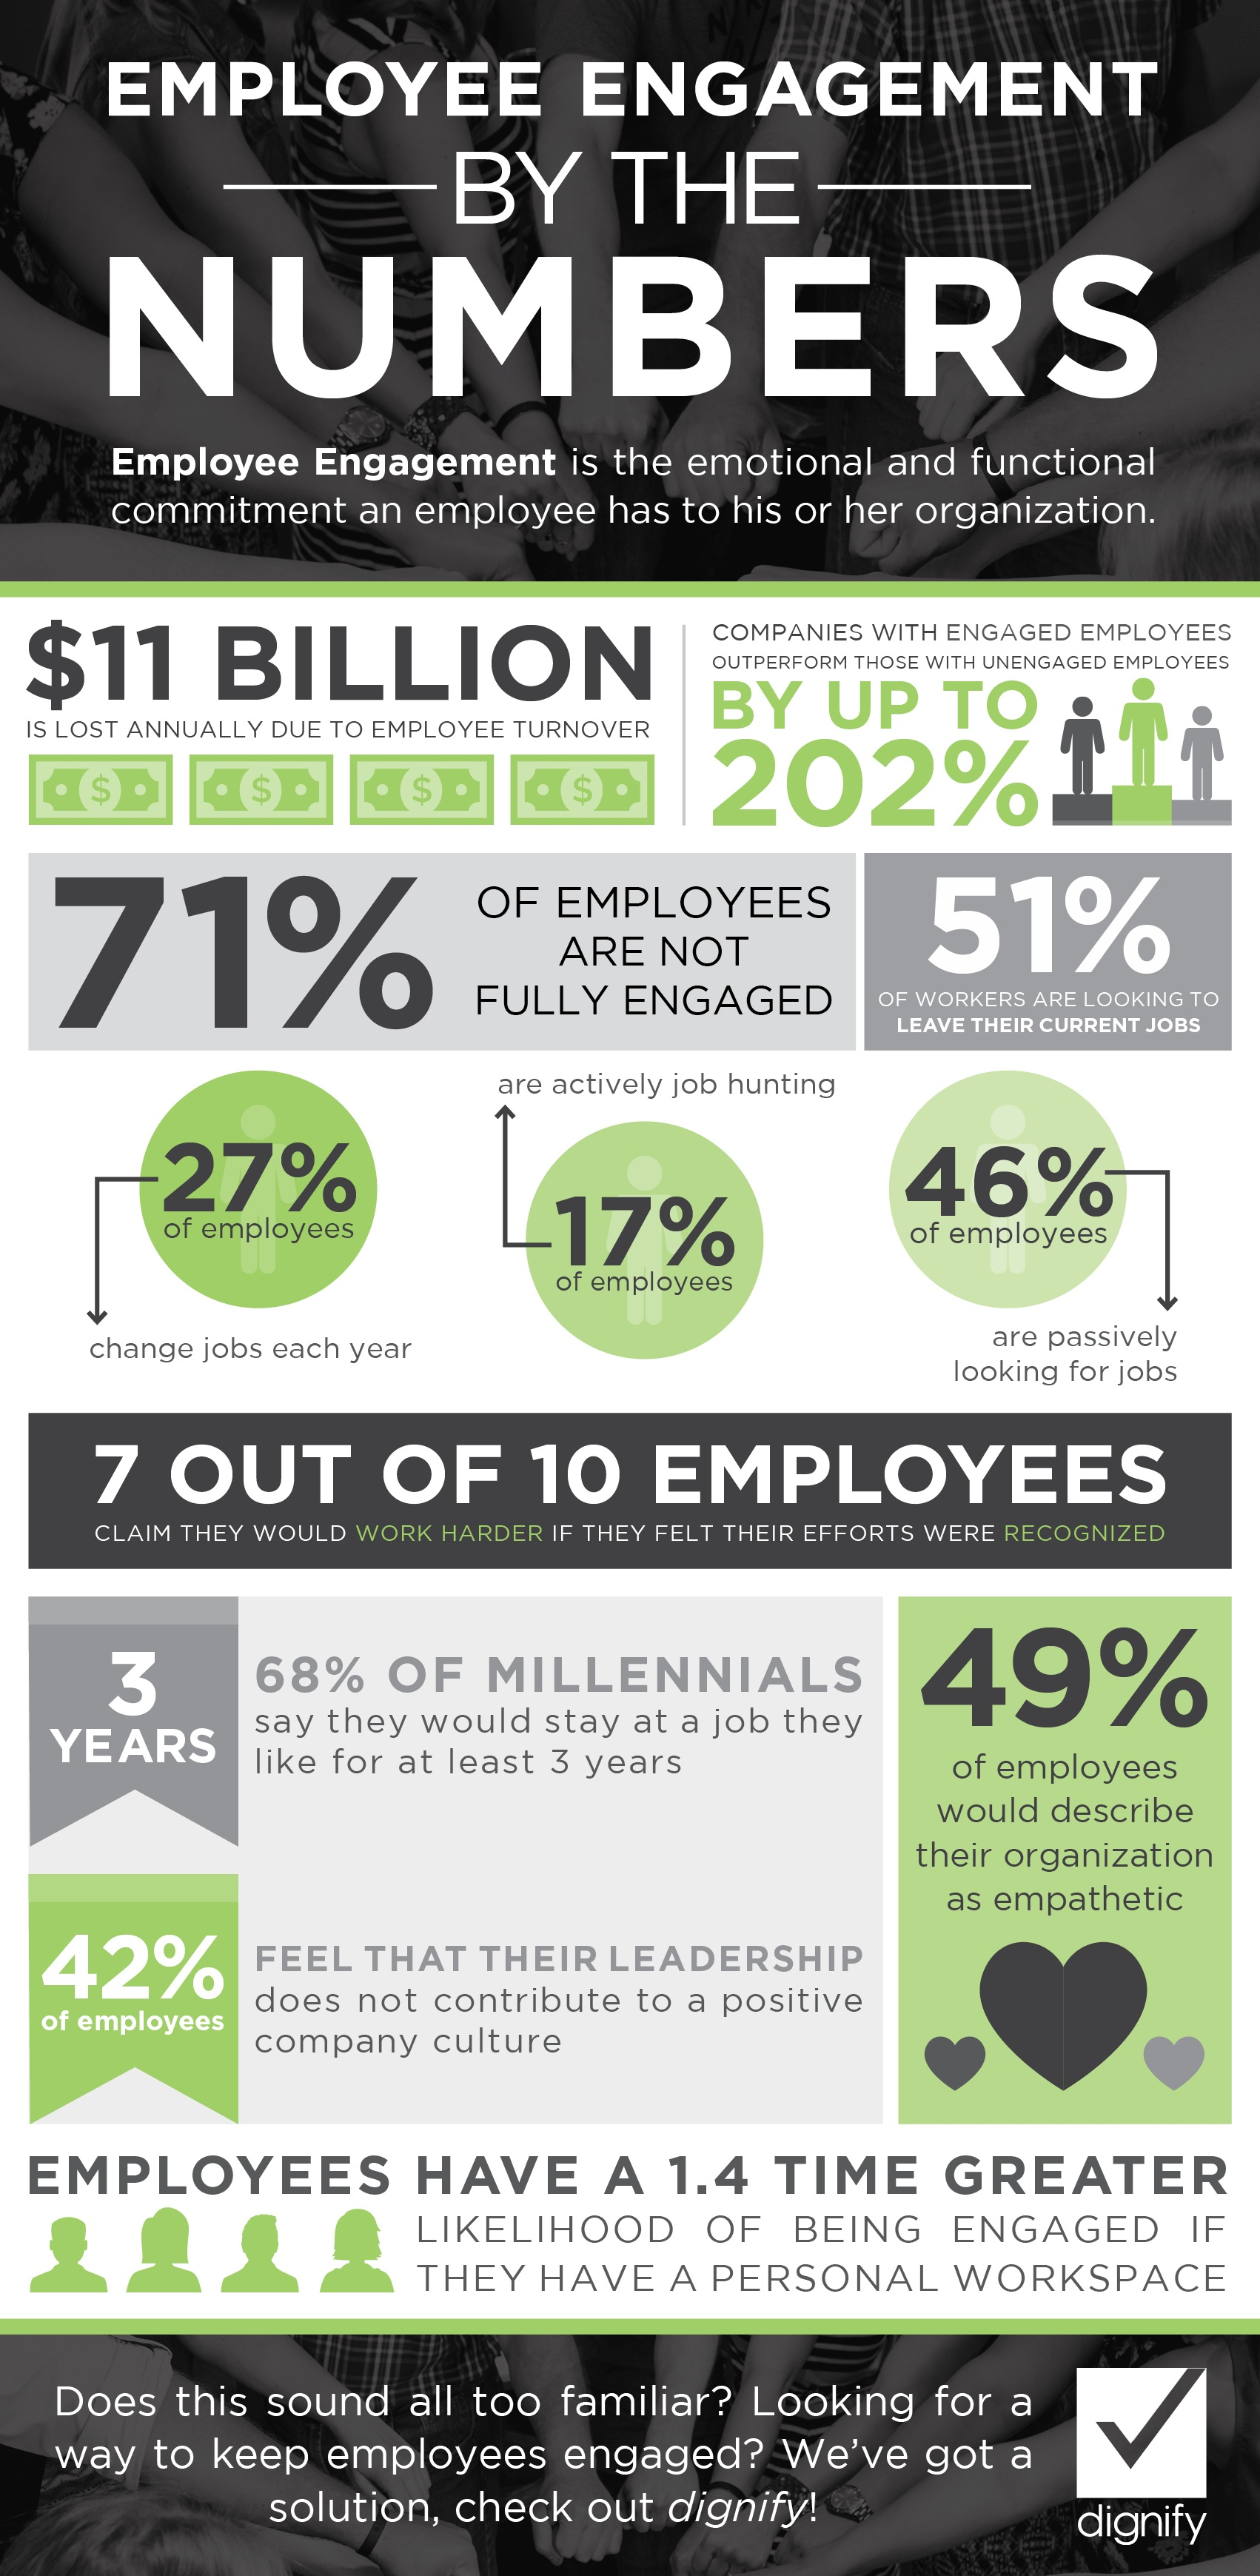 Employee Engagement By The Numbers